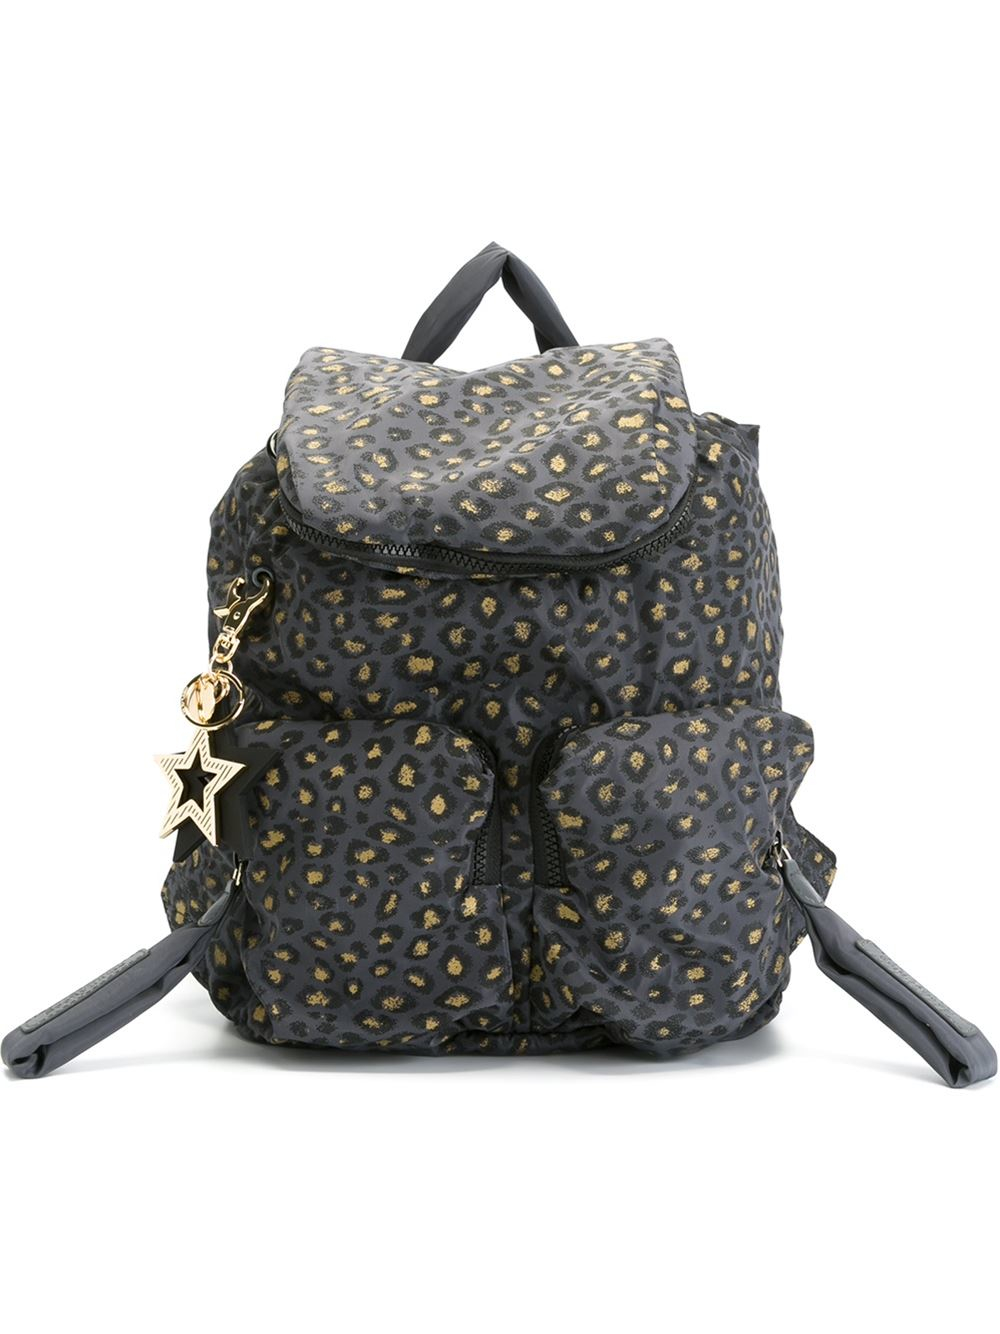 Lyst - See By Chloé  joy Rider  Backpack in Gray 0ade45686eab4